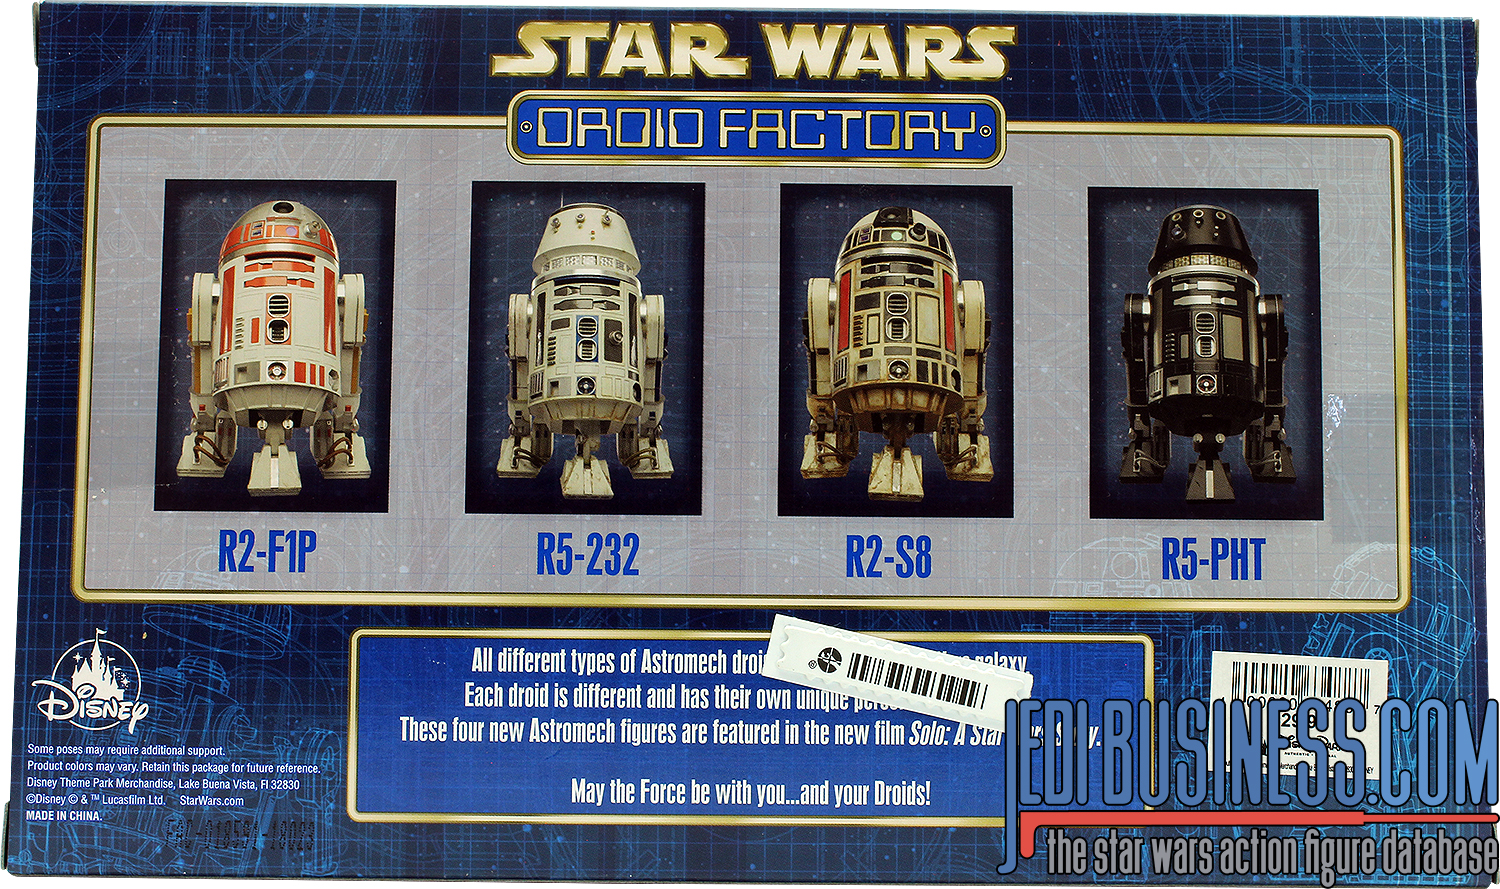 R5-PHT, 2018 Droid Factory 4-Pack